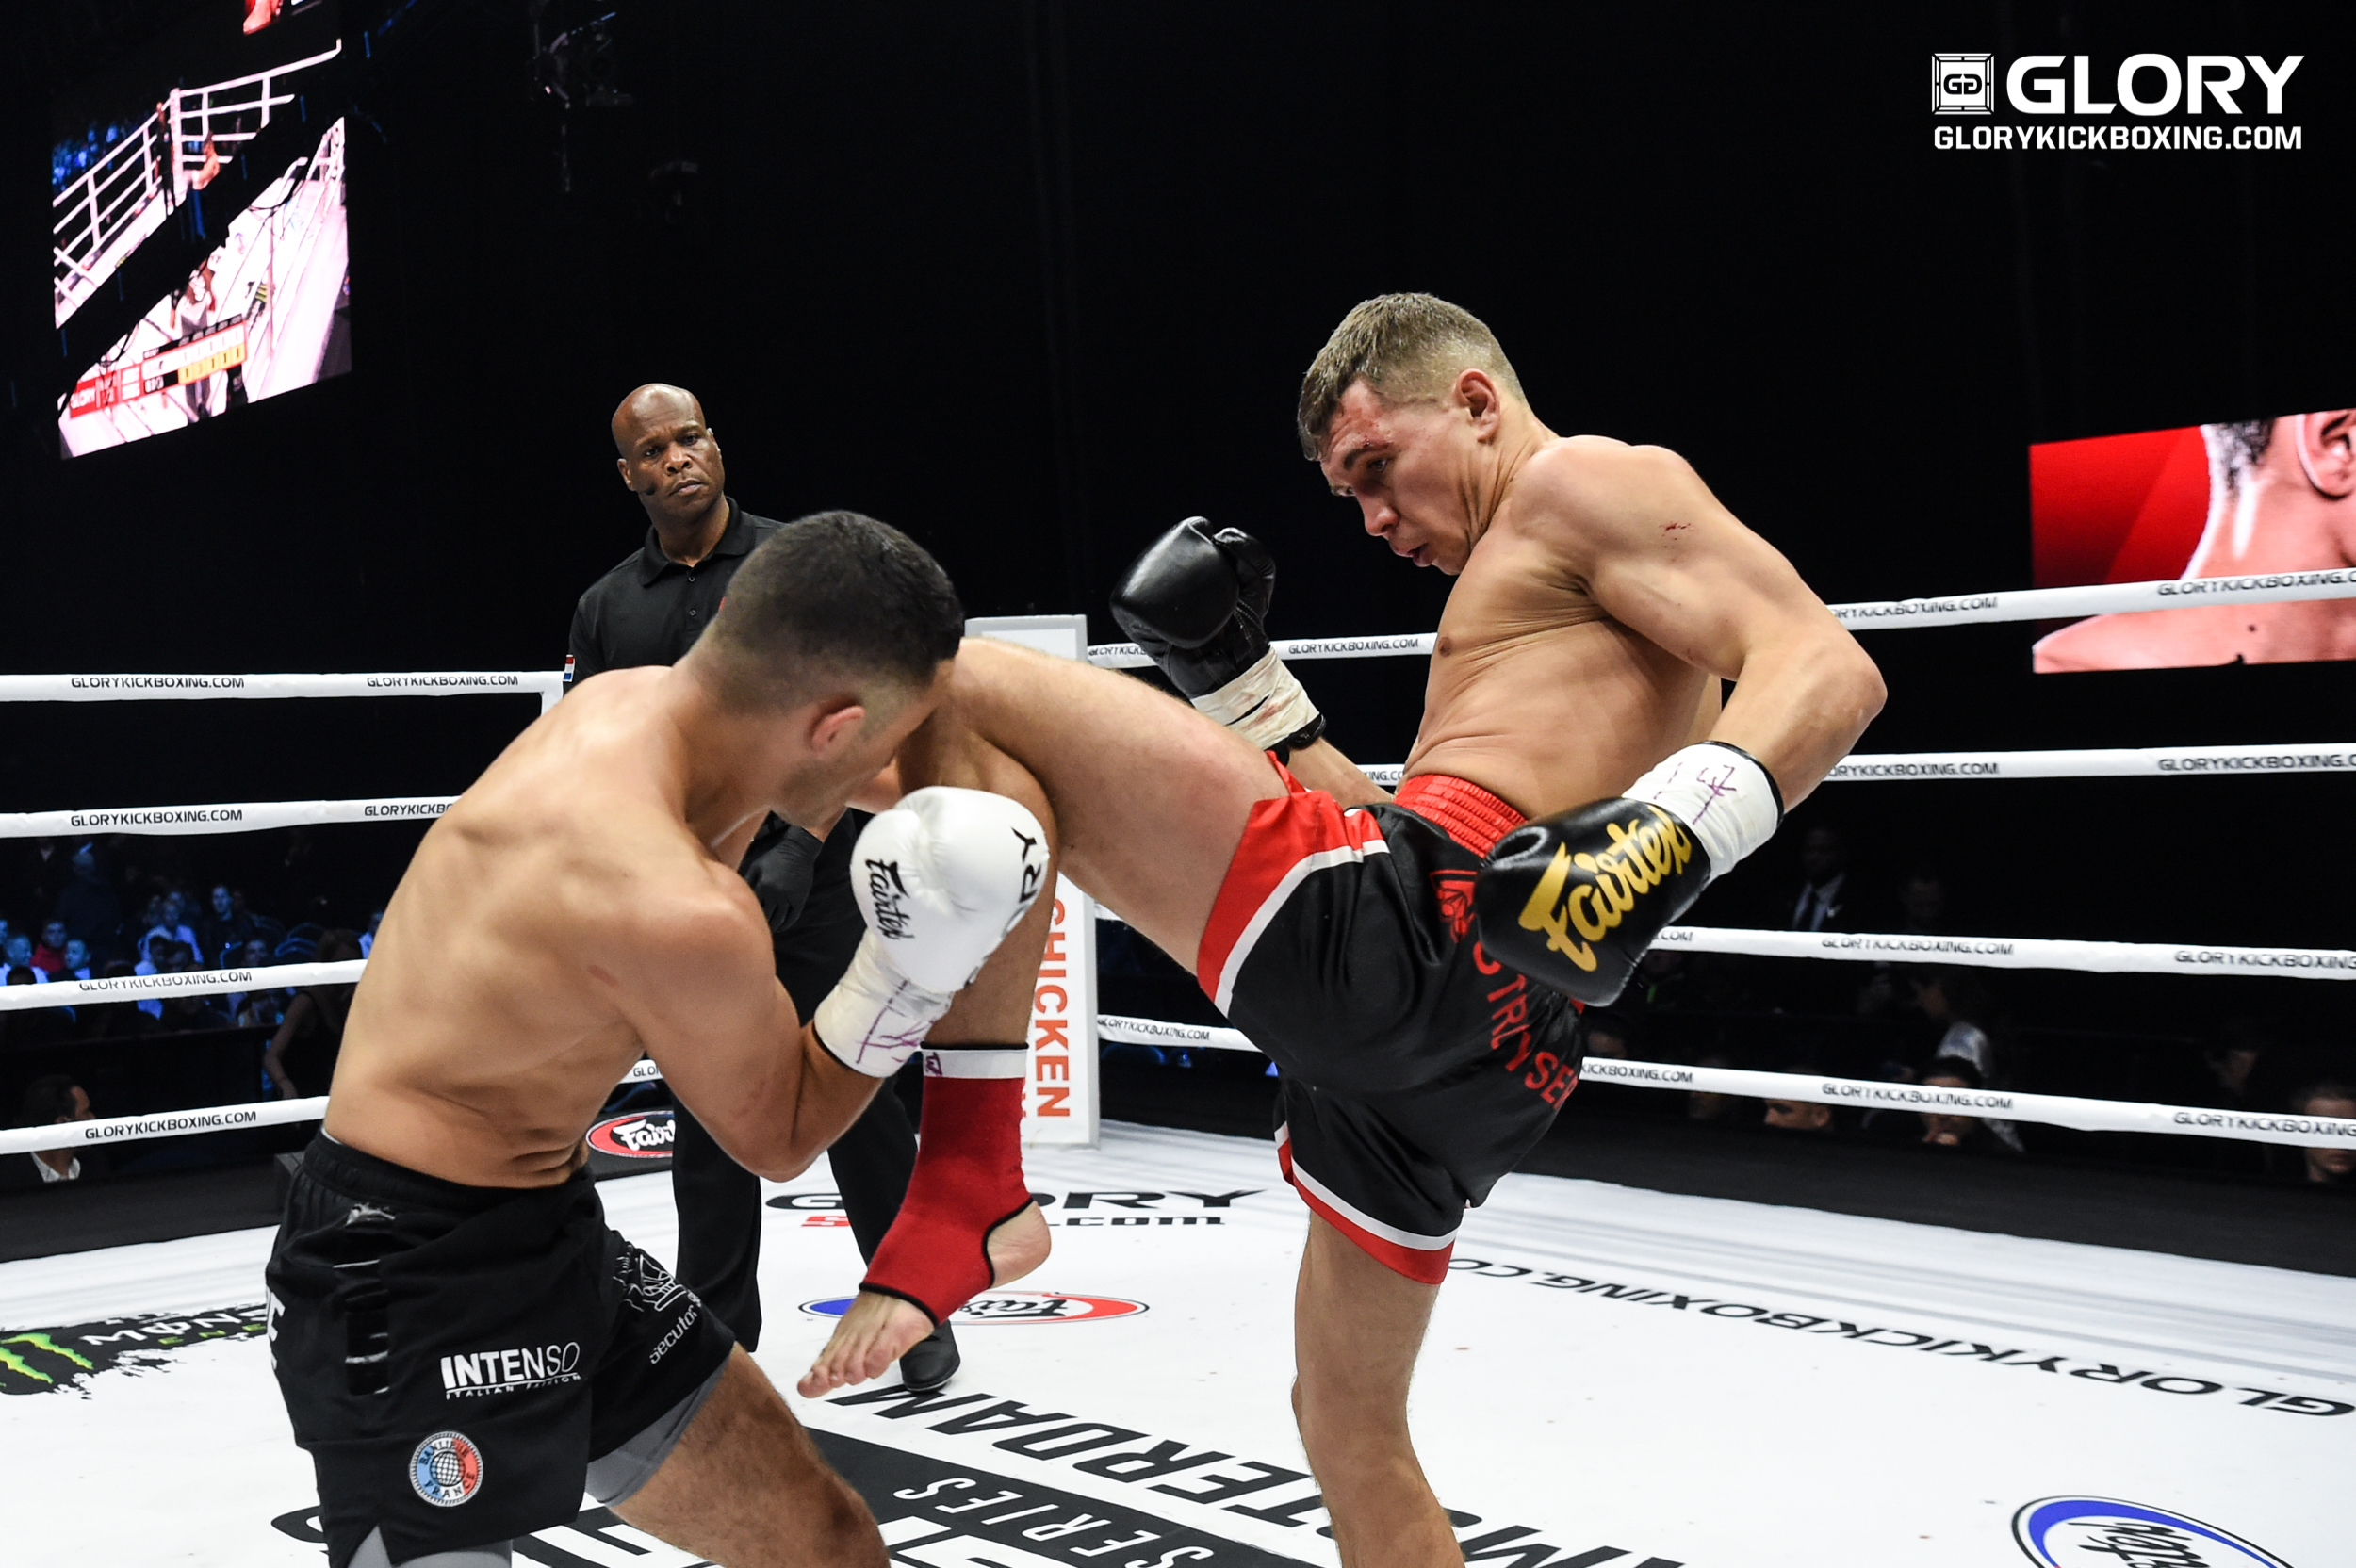 Ulianov outworks Zouggary, captures decision win